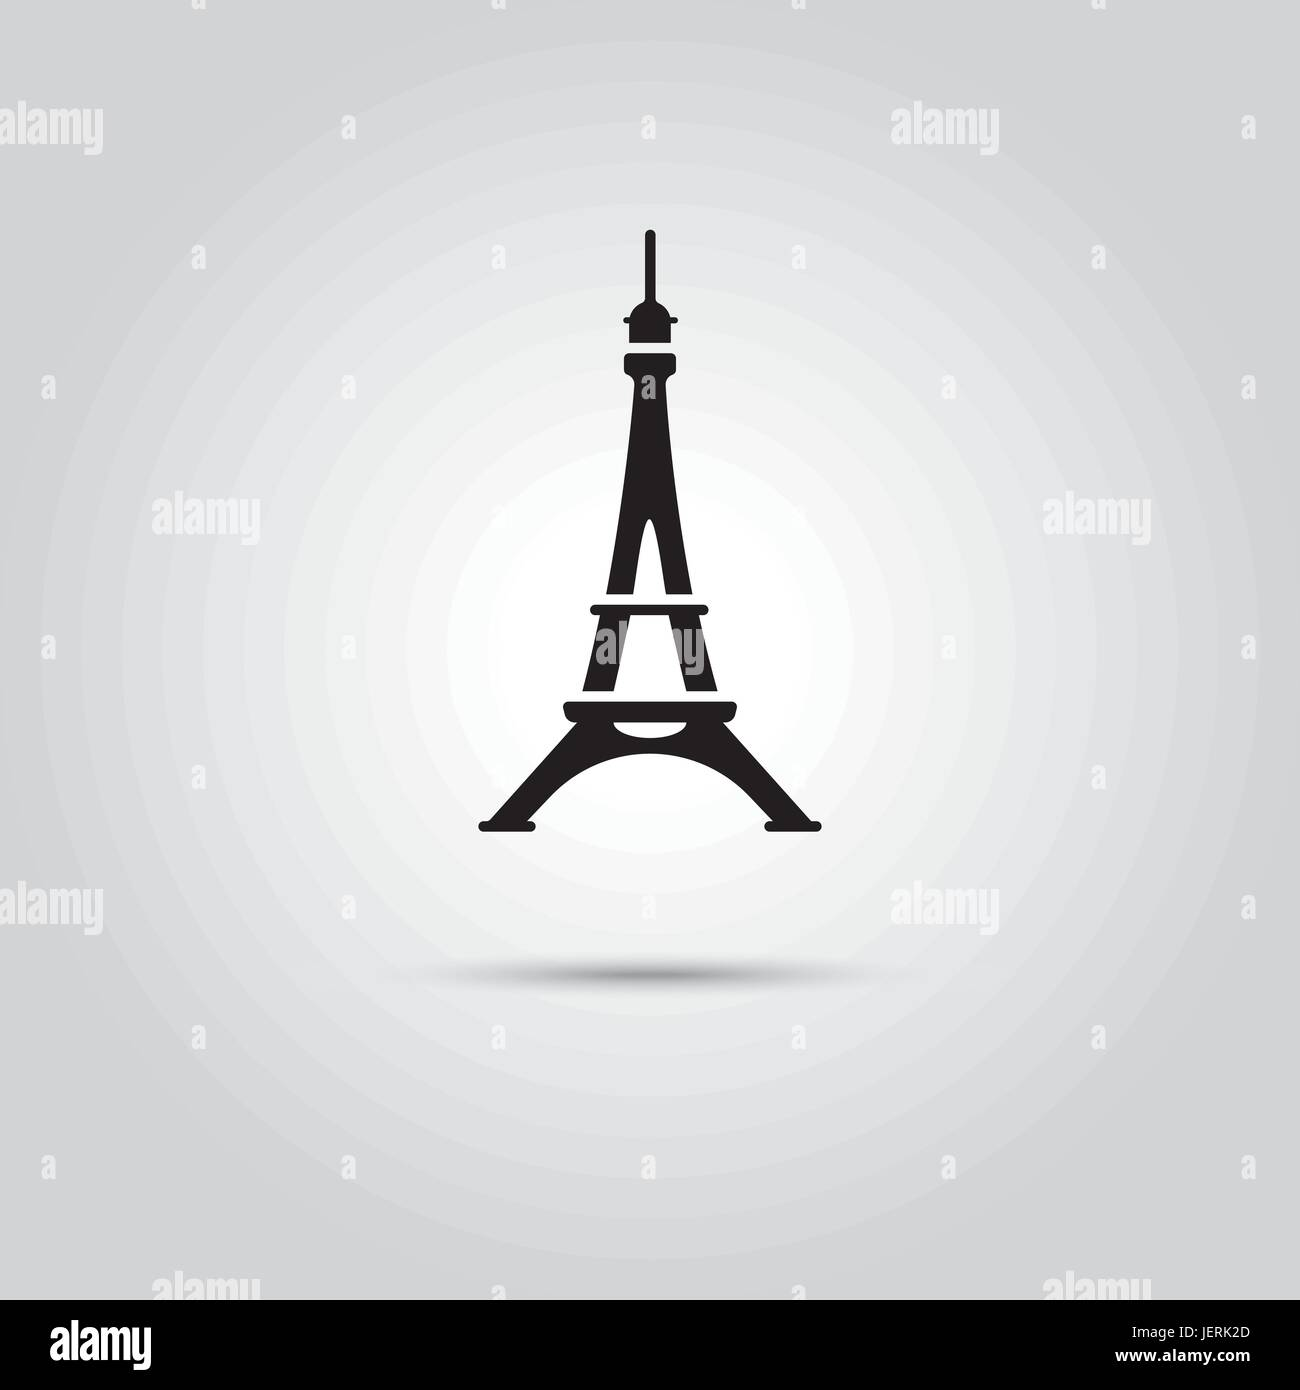 Eiffel Tower at paris, France. EPS 10 Vector icon. - Stock Vector